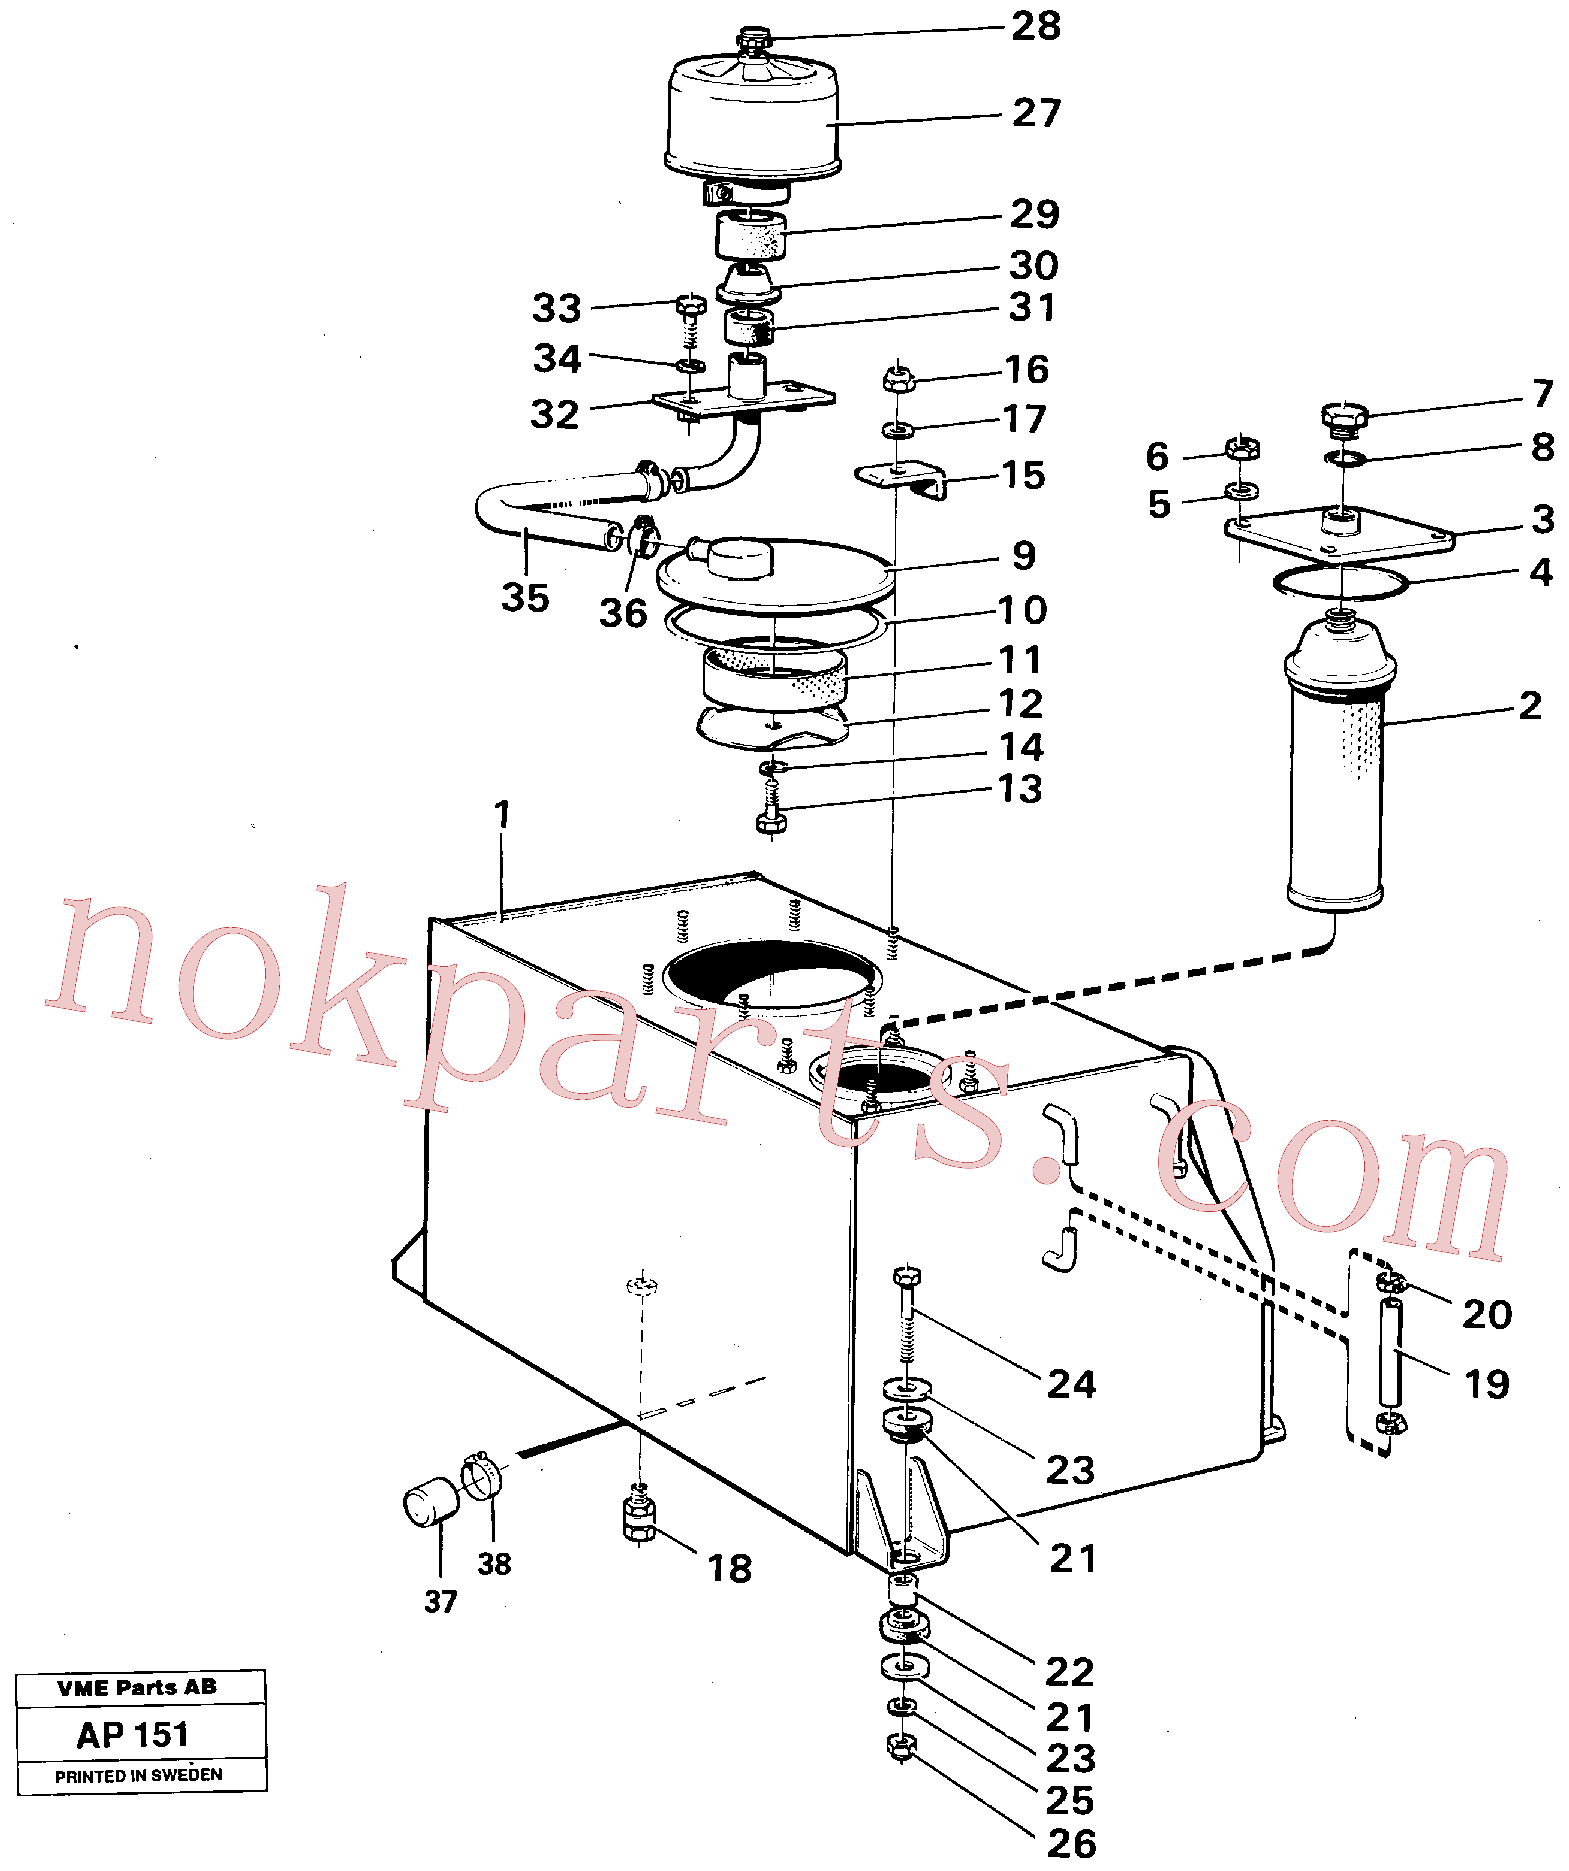 VOE970976 for Volvo Hydraulic tank(AP151 assembly)